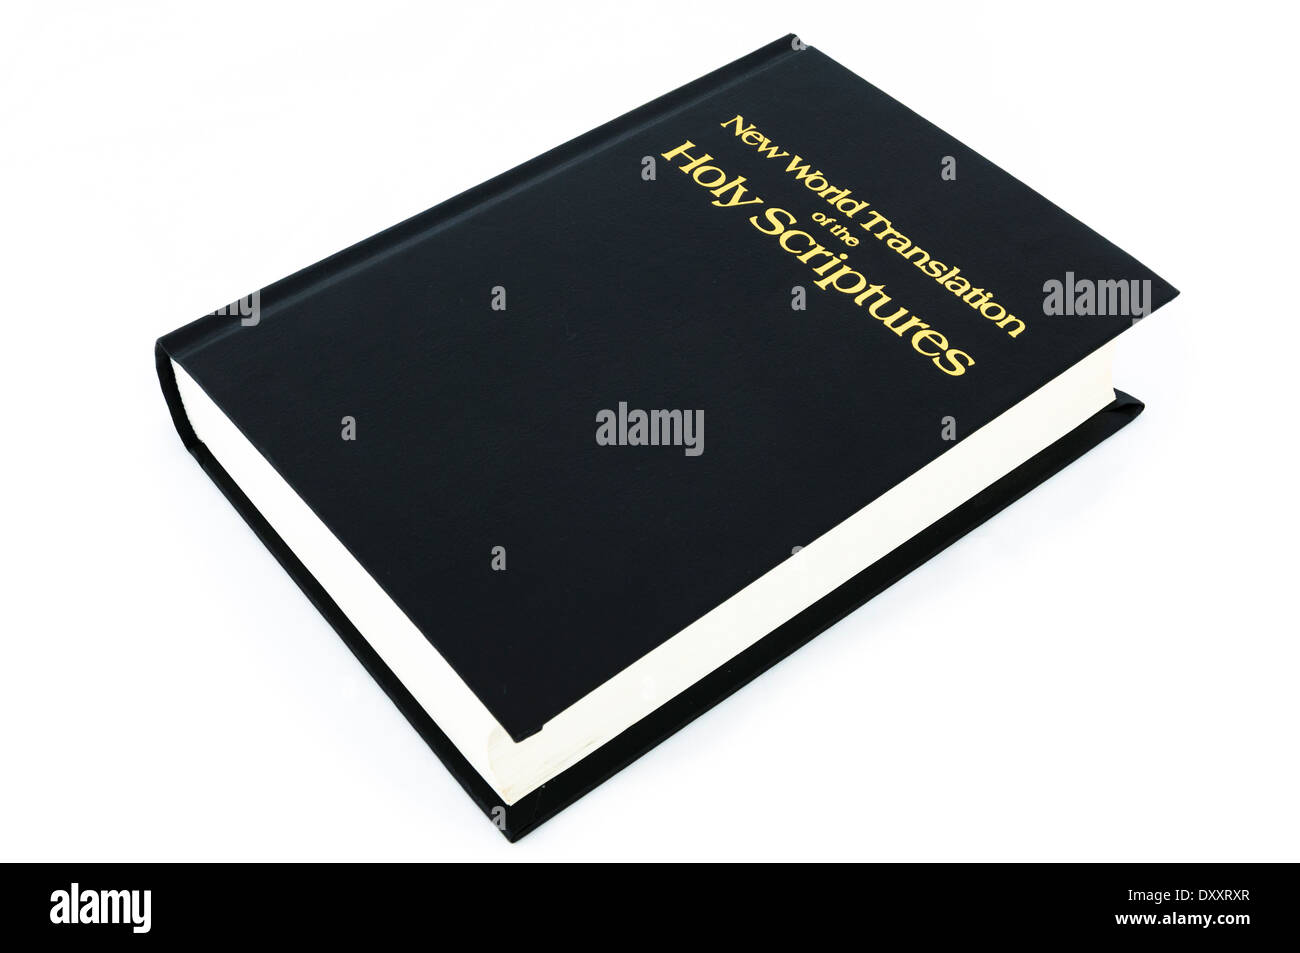 New World Translation of the Holy Scriptures as used by the Jehovas Witnesses - Stock Image